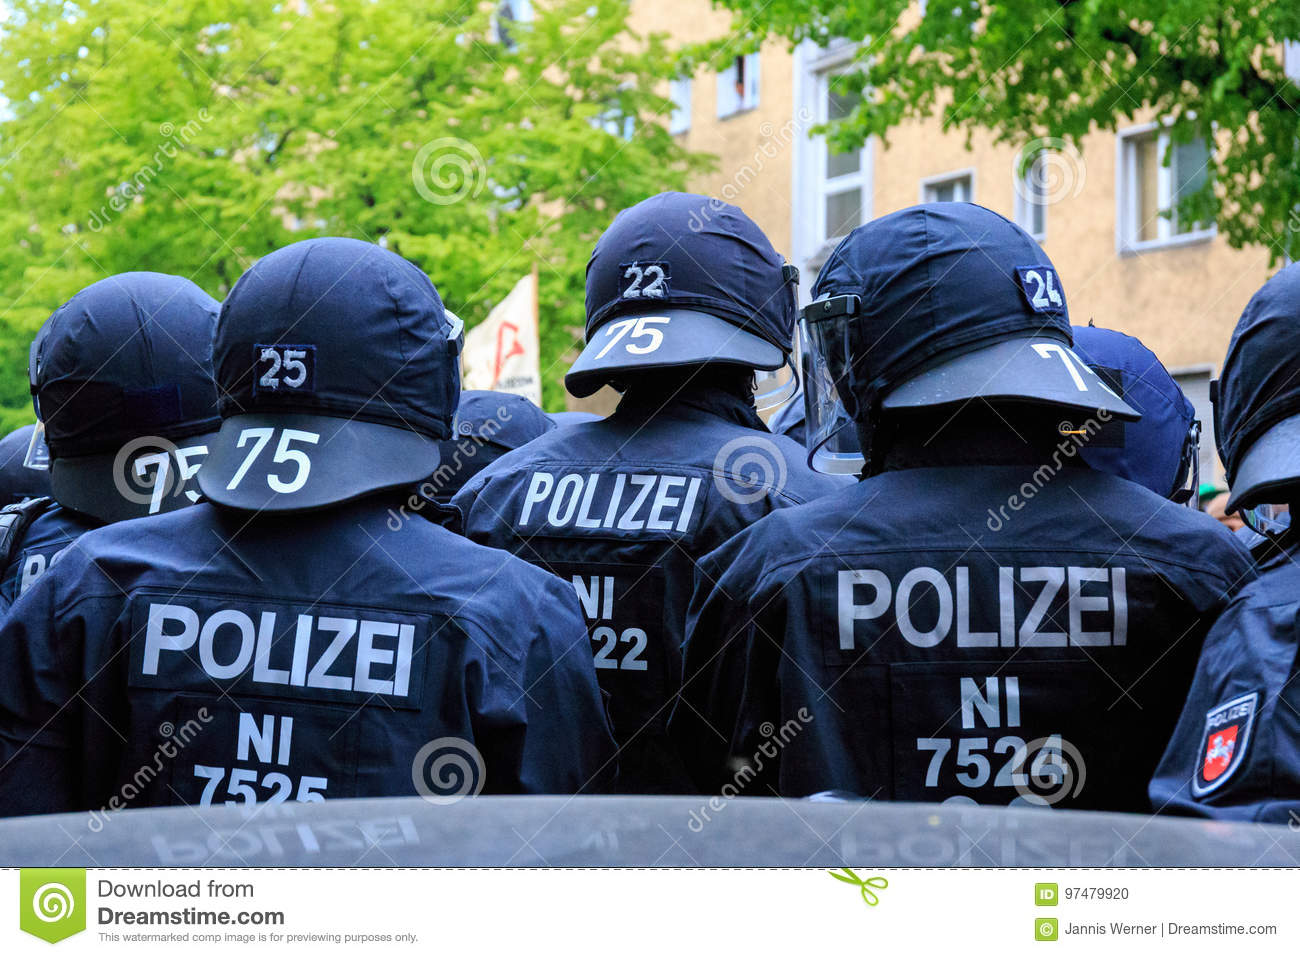 [img]https://thumbs.dreamstime.com/z/may-day-berlin-germany-riot-police-state-lower-saxony-deployed-germany-97479920.jpg[/img]